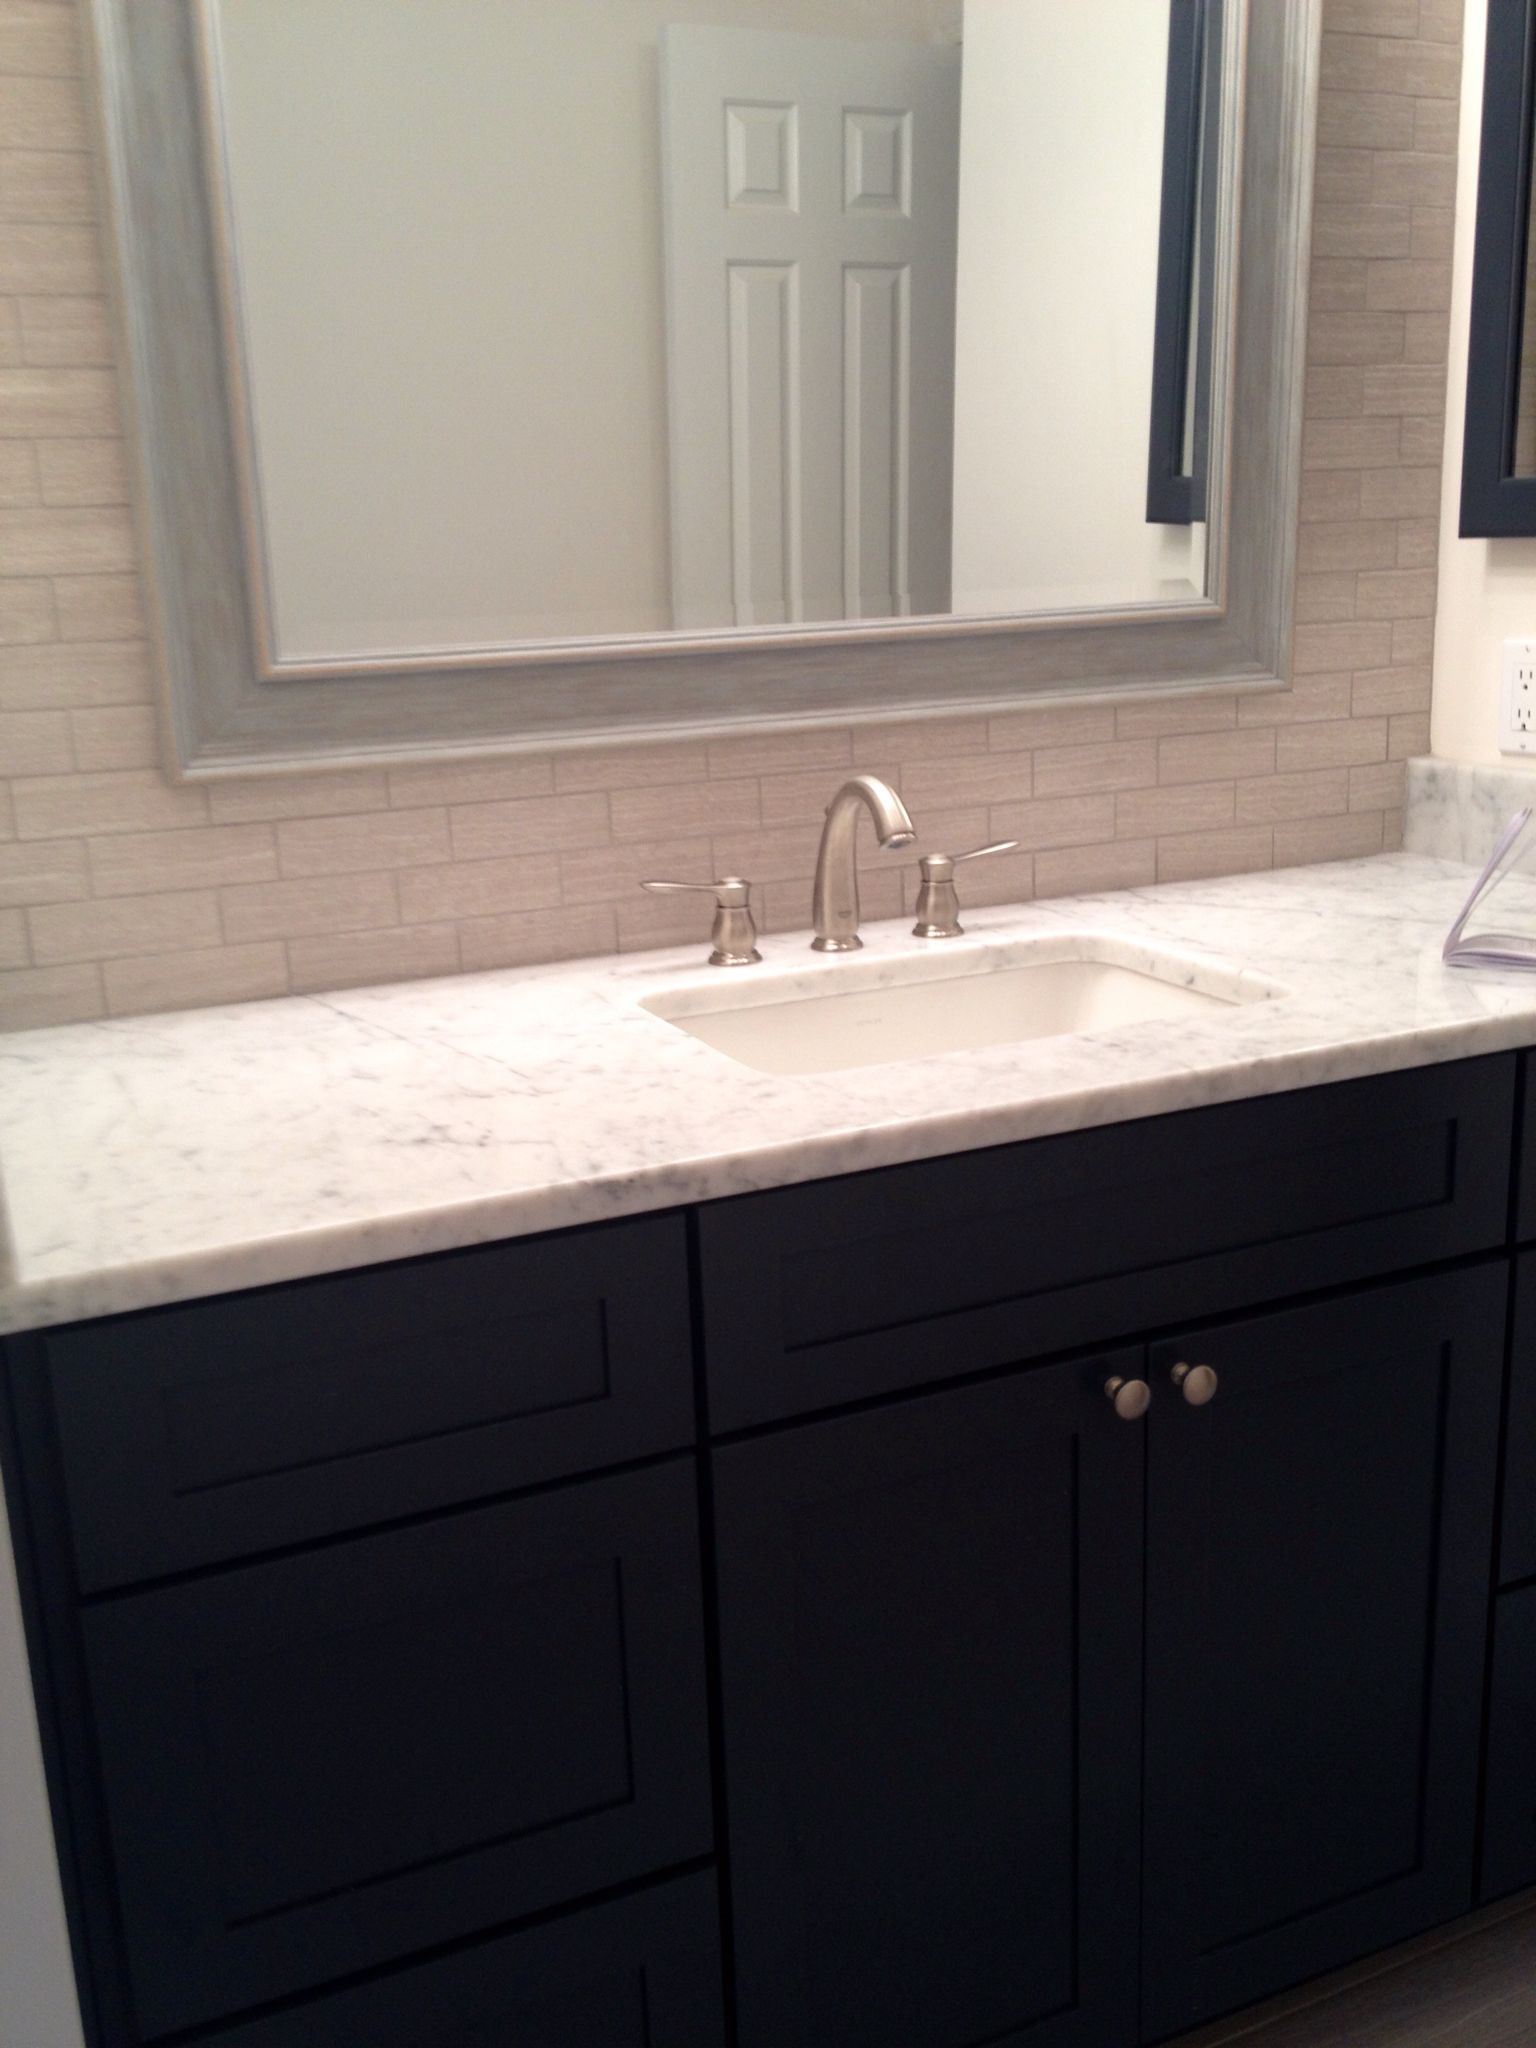 Photo Album For Website Leonia Silver tile mosaic full wall backsplash Grohe Faucet Kohler Ladera sink